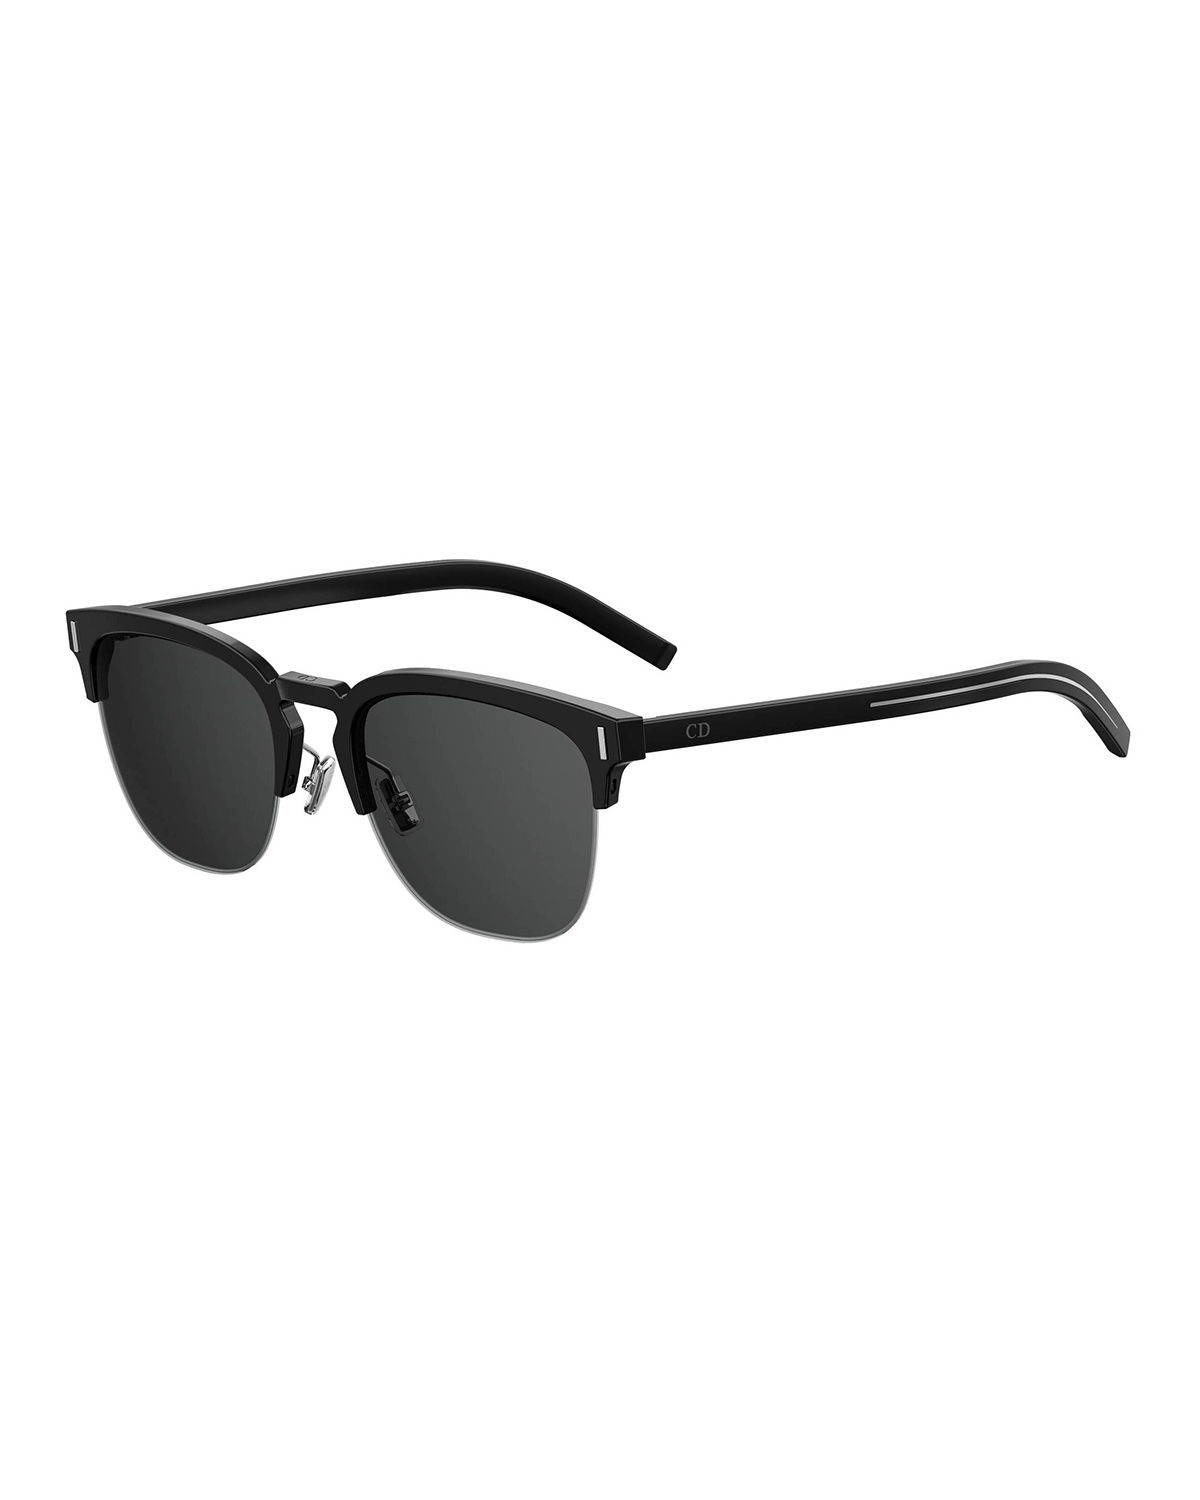 Dior Sunglasses Men's Fraction 6 Half-Rim Sunglasses